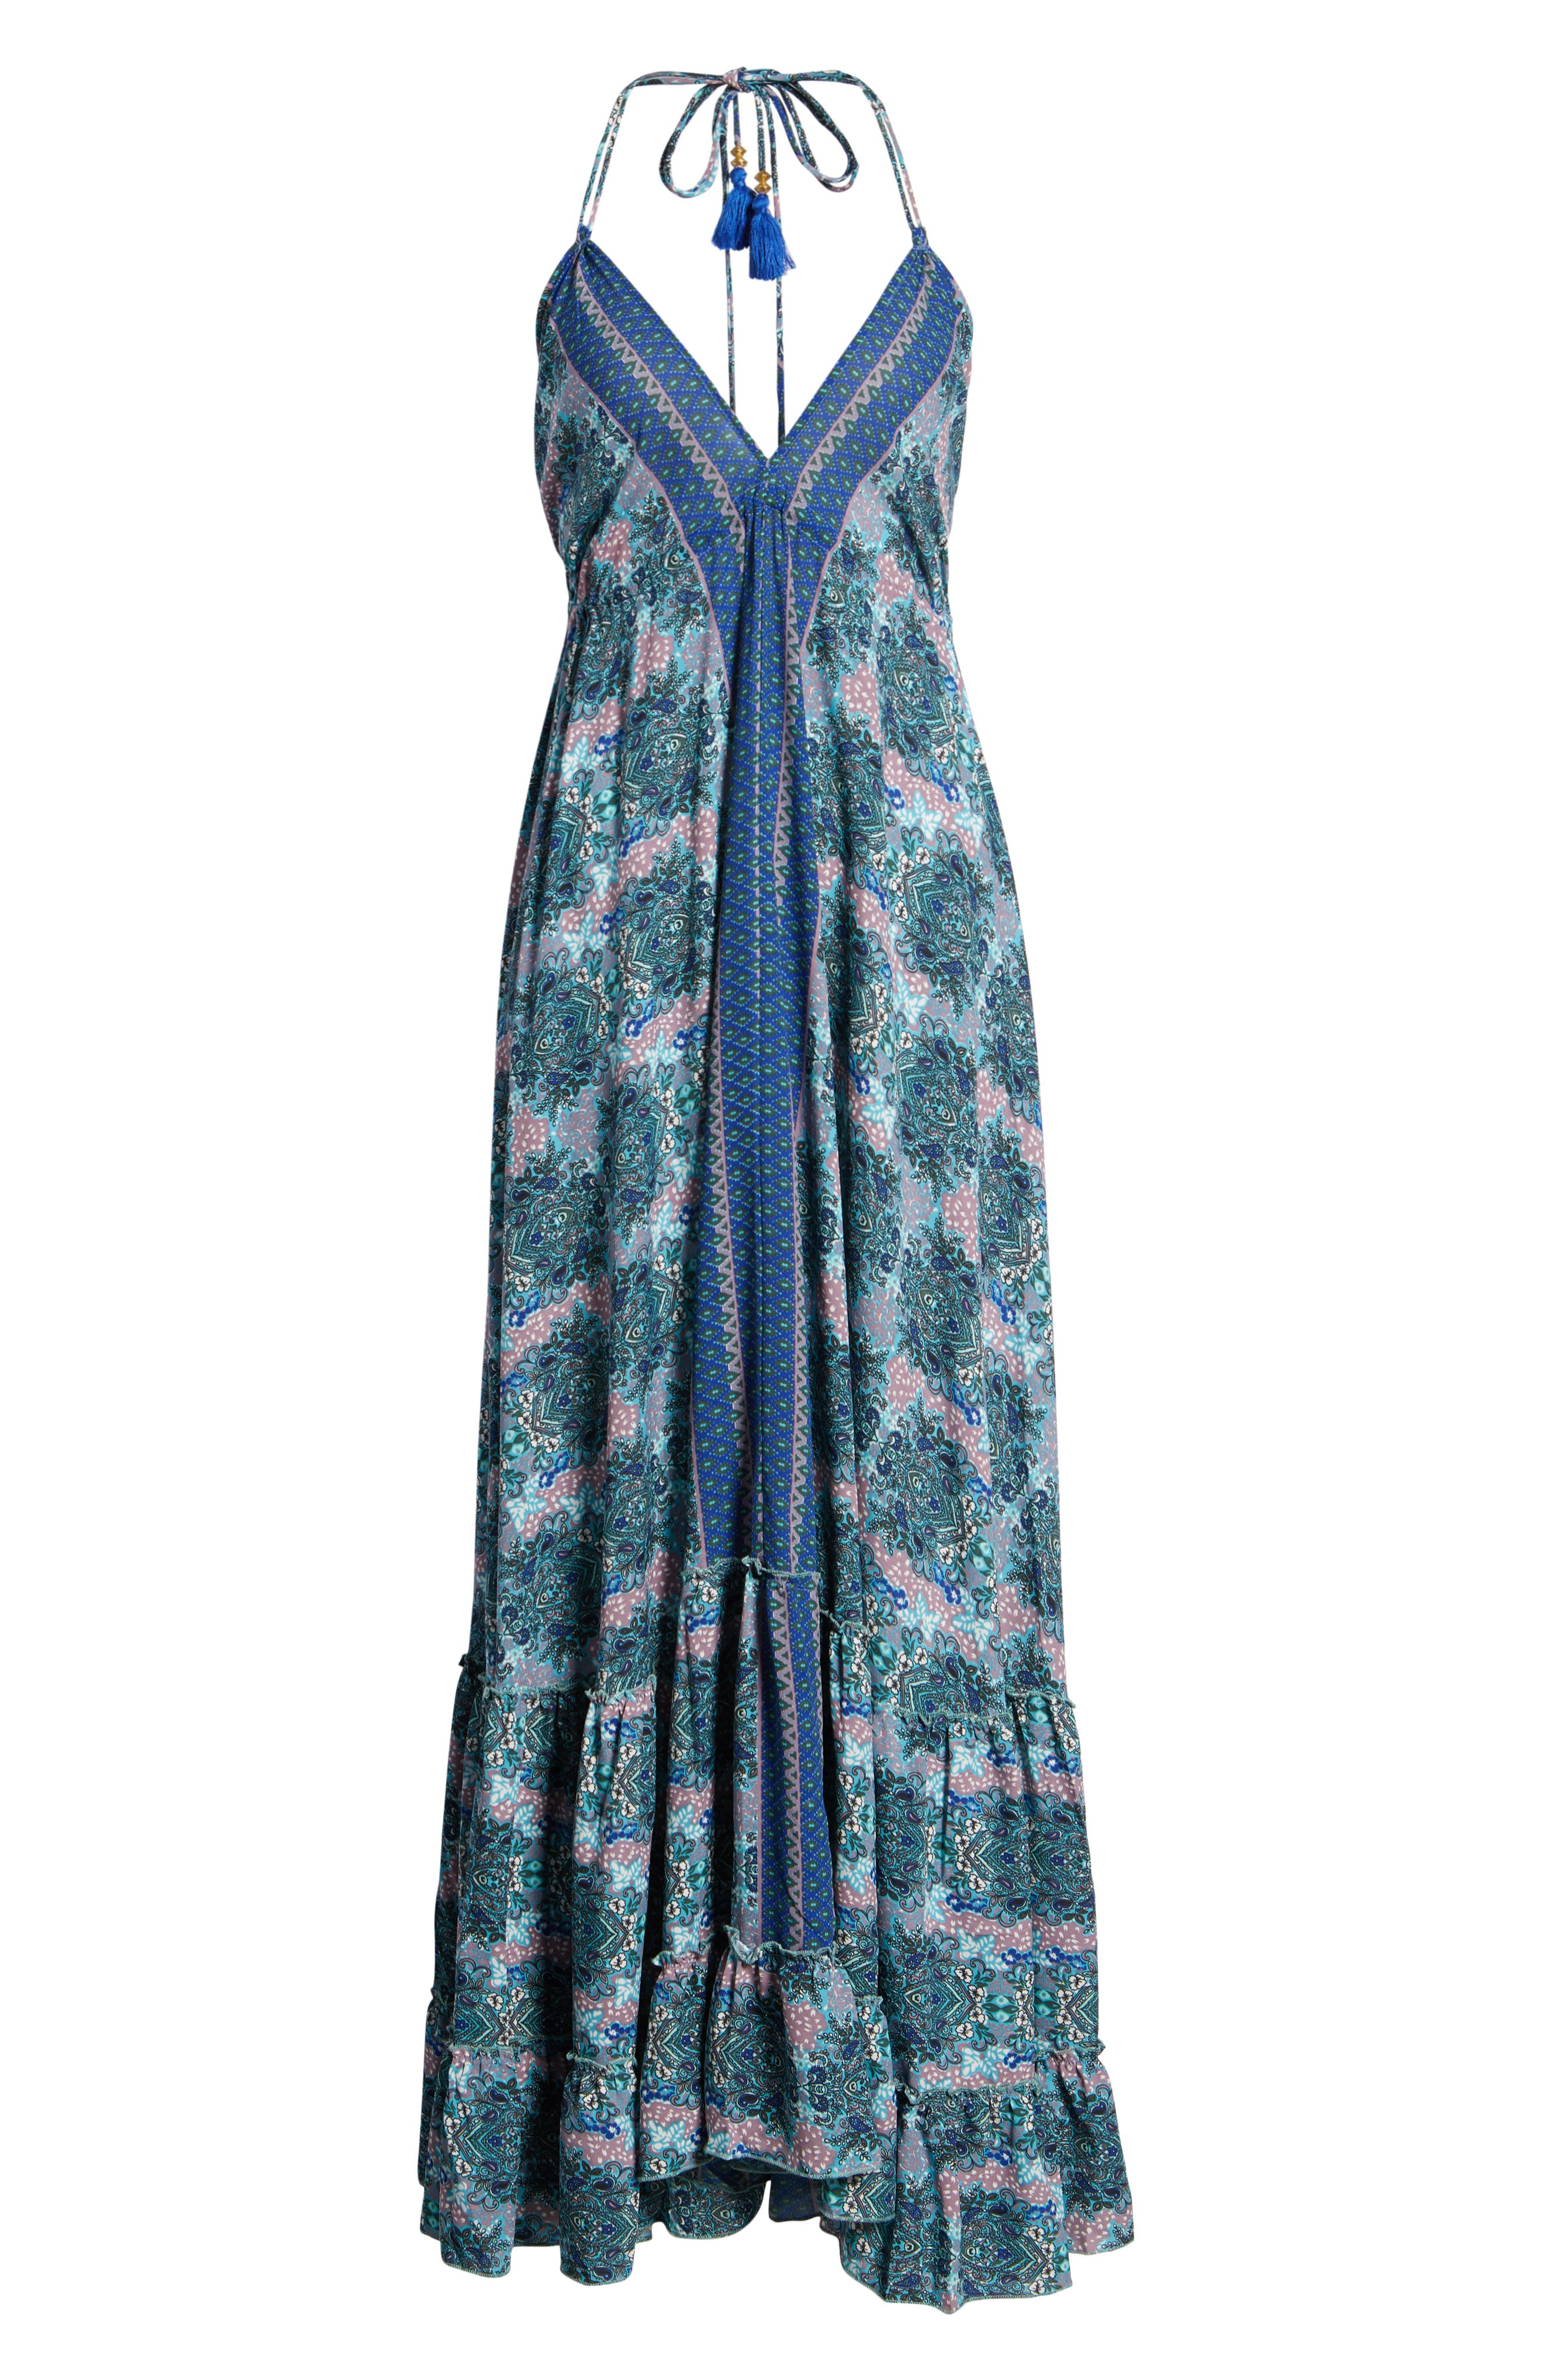 Poetic Dreams Halter Maxi Dress,                             Alternate thumbnail 8, color,                             Blue